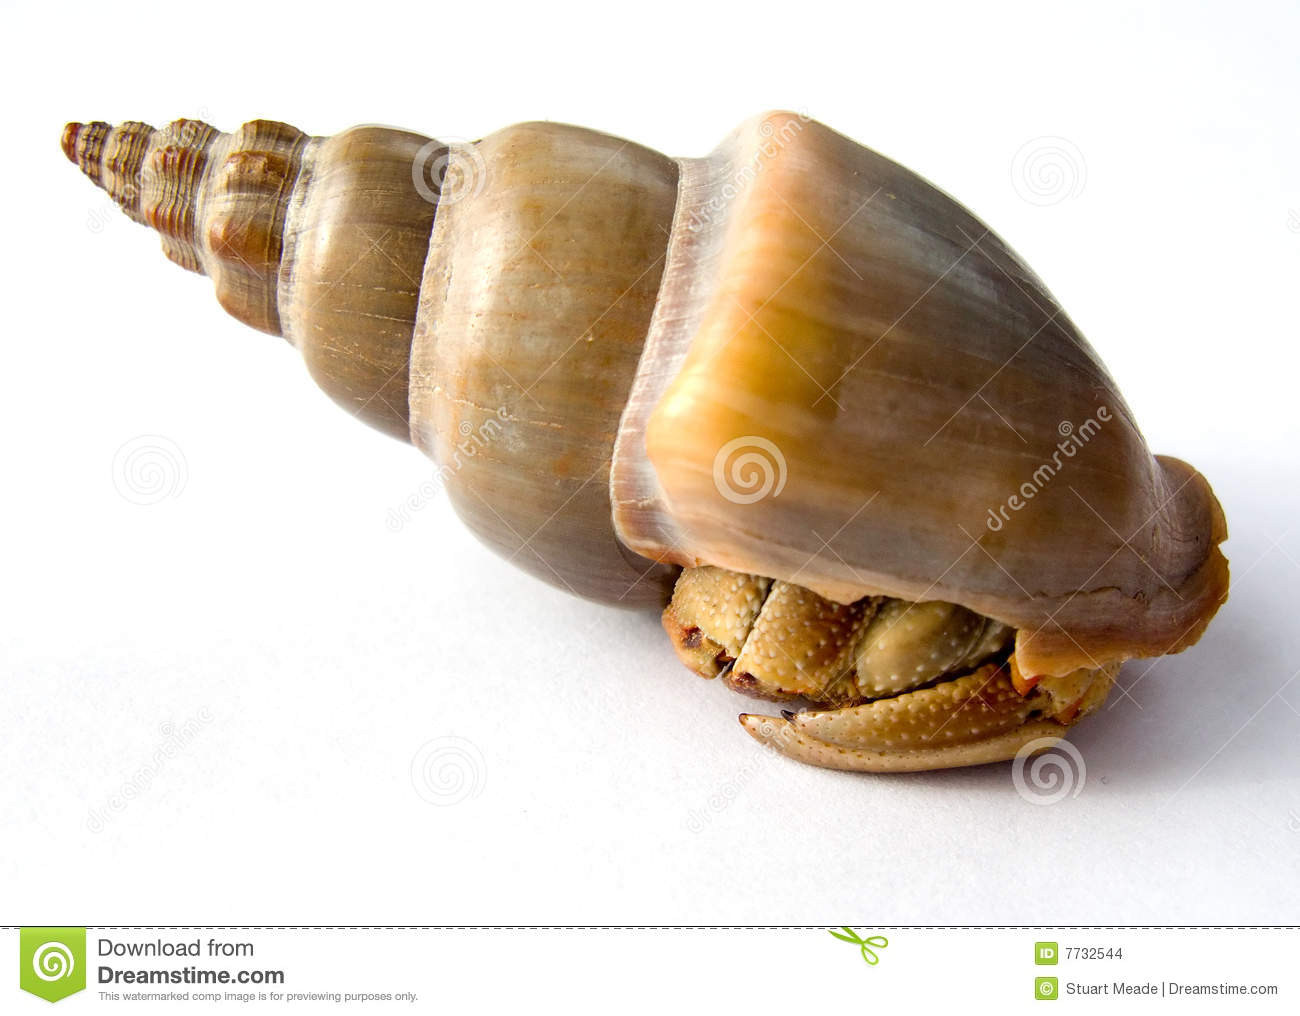 hermit-crab-shell-isolated-7732544.jpg